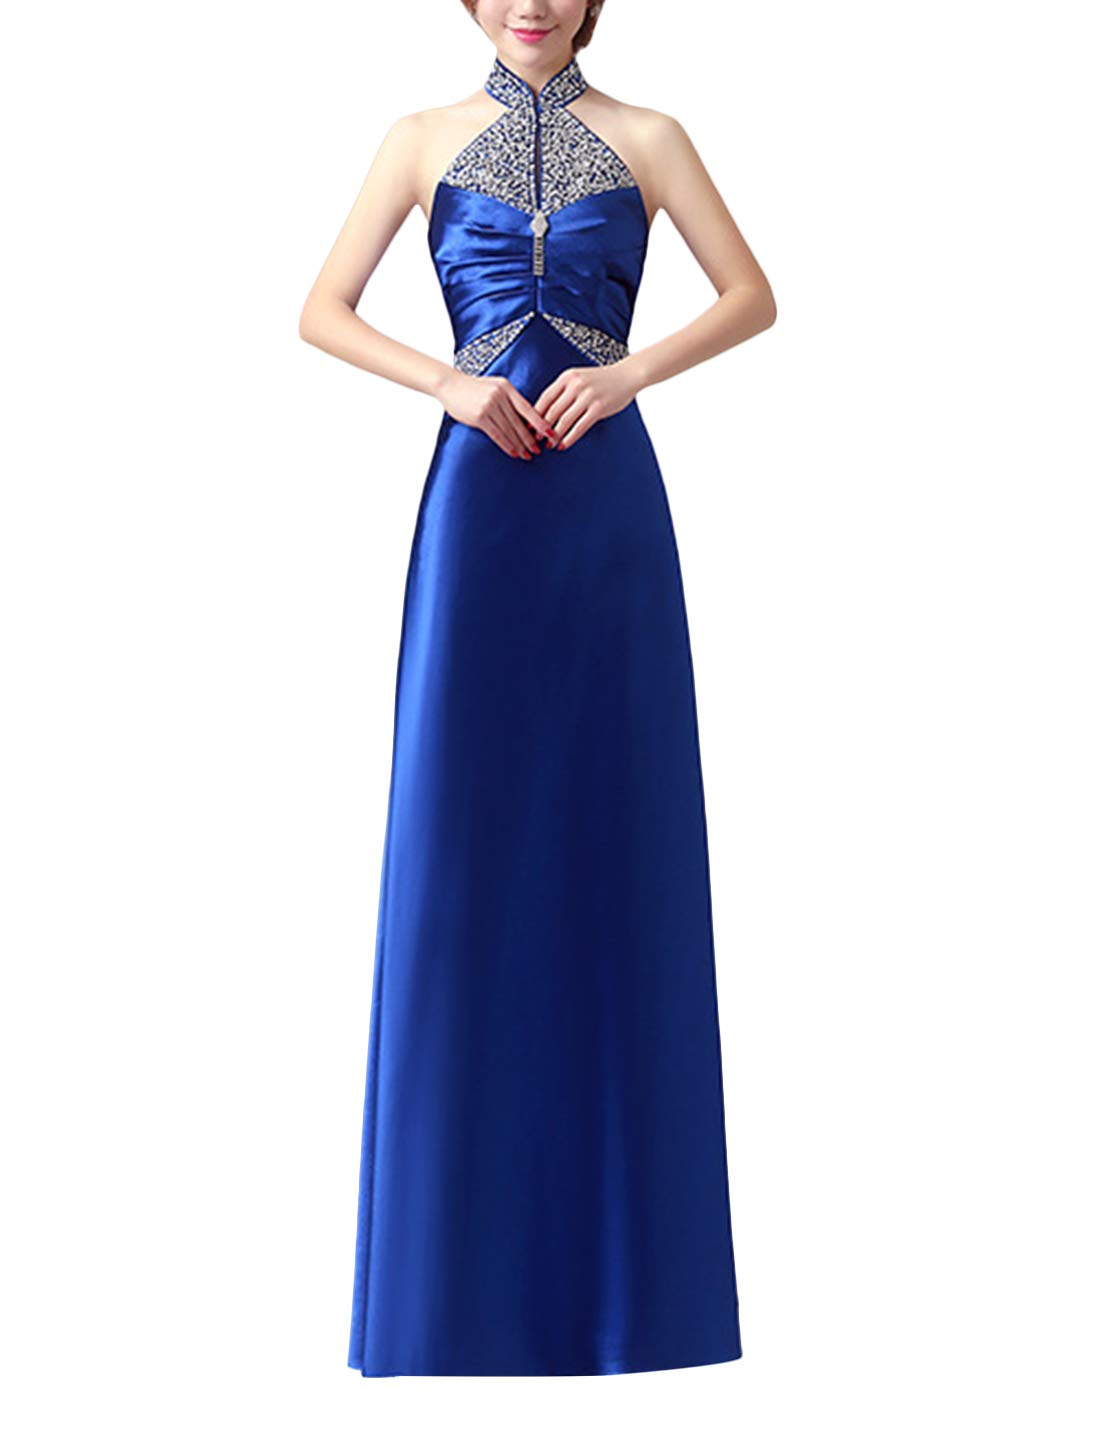 Available at Amazon: Tanming Women's Sleeveless Off Shoulder Formal Evening Gown A-Line Party Maxi Dress